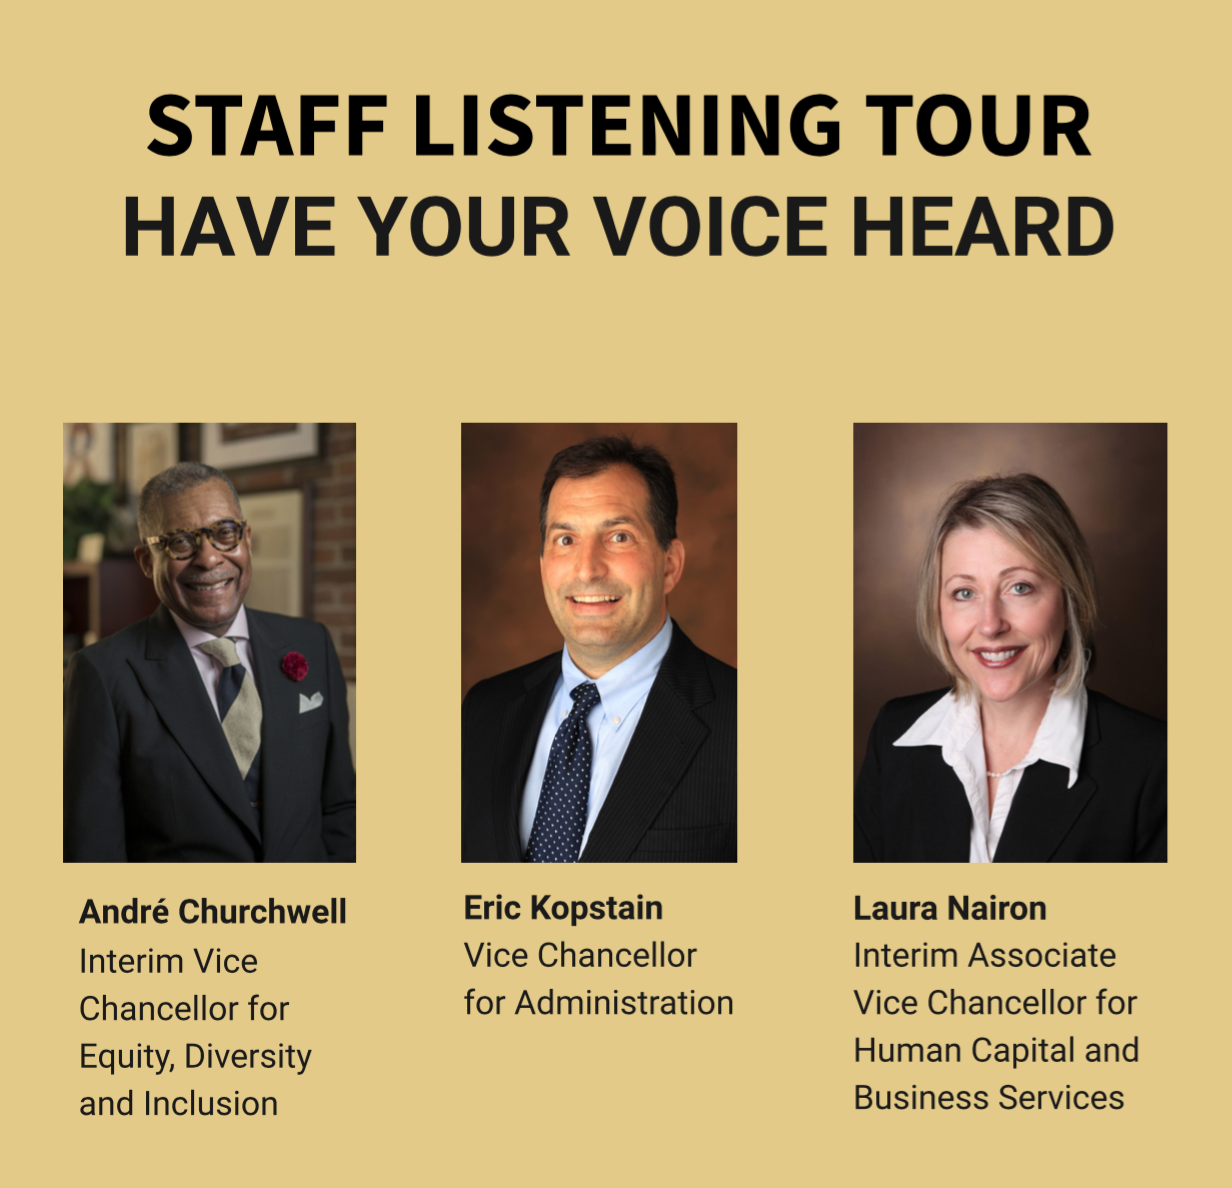 Staff Listening Tour Have Your Voice Heard graphic